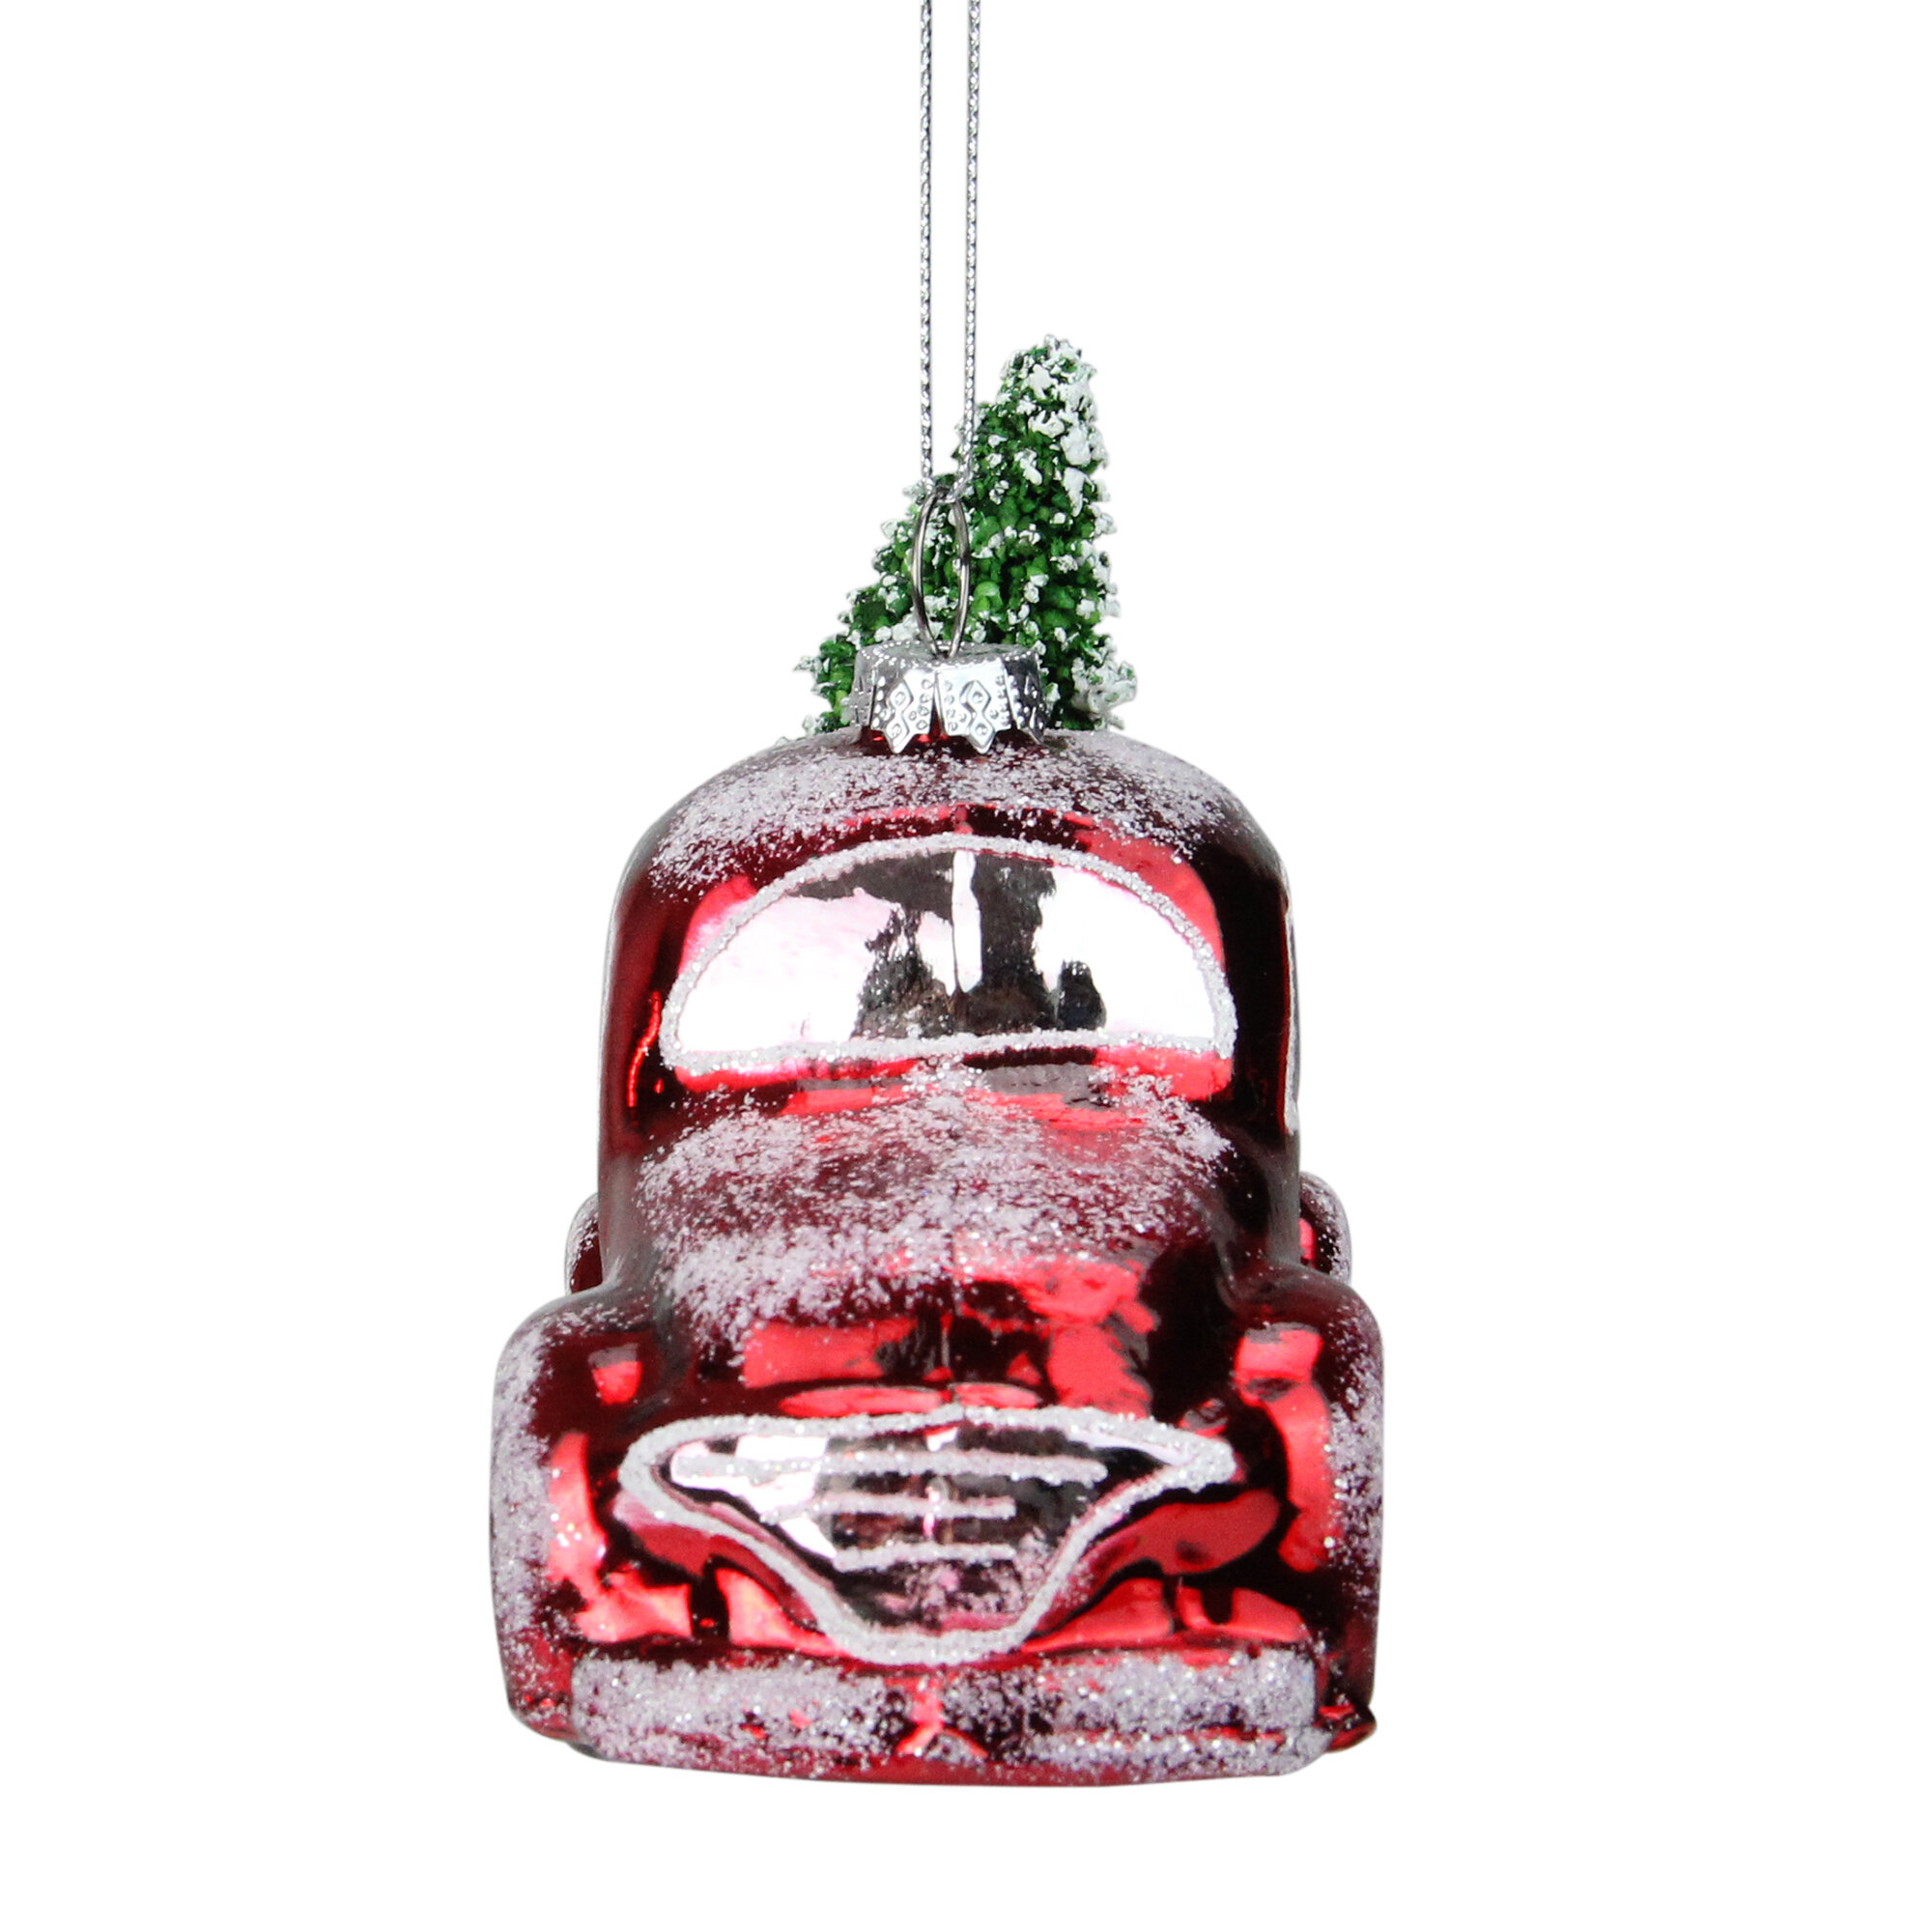 Northlight Frosted Pickup Truck With Flocked Christmas Tree Glass Holiday Shaped Ornament Reviews Wayfair